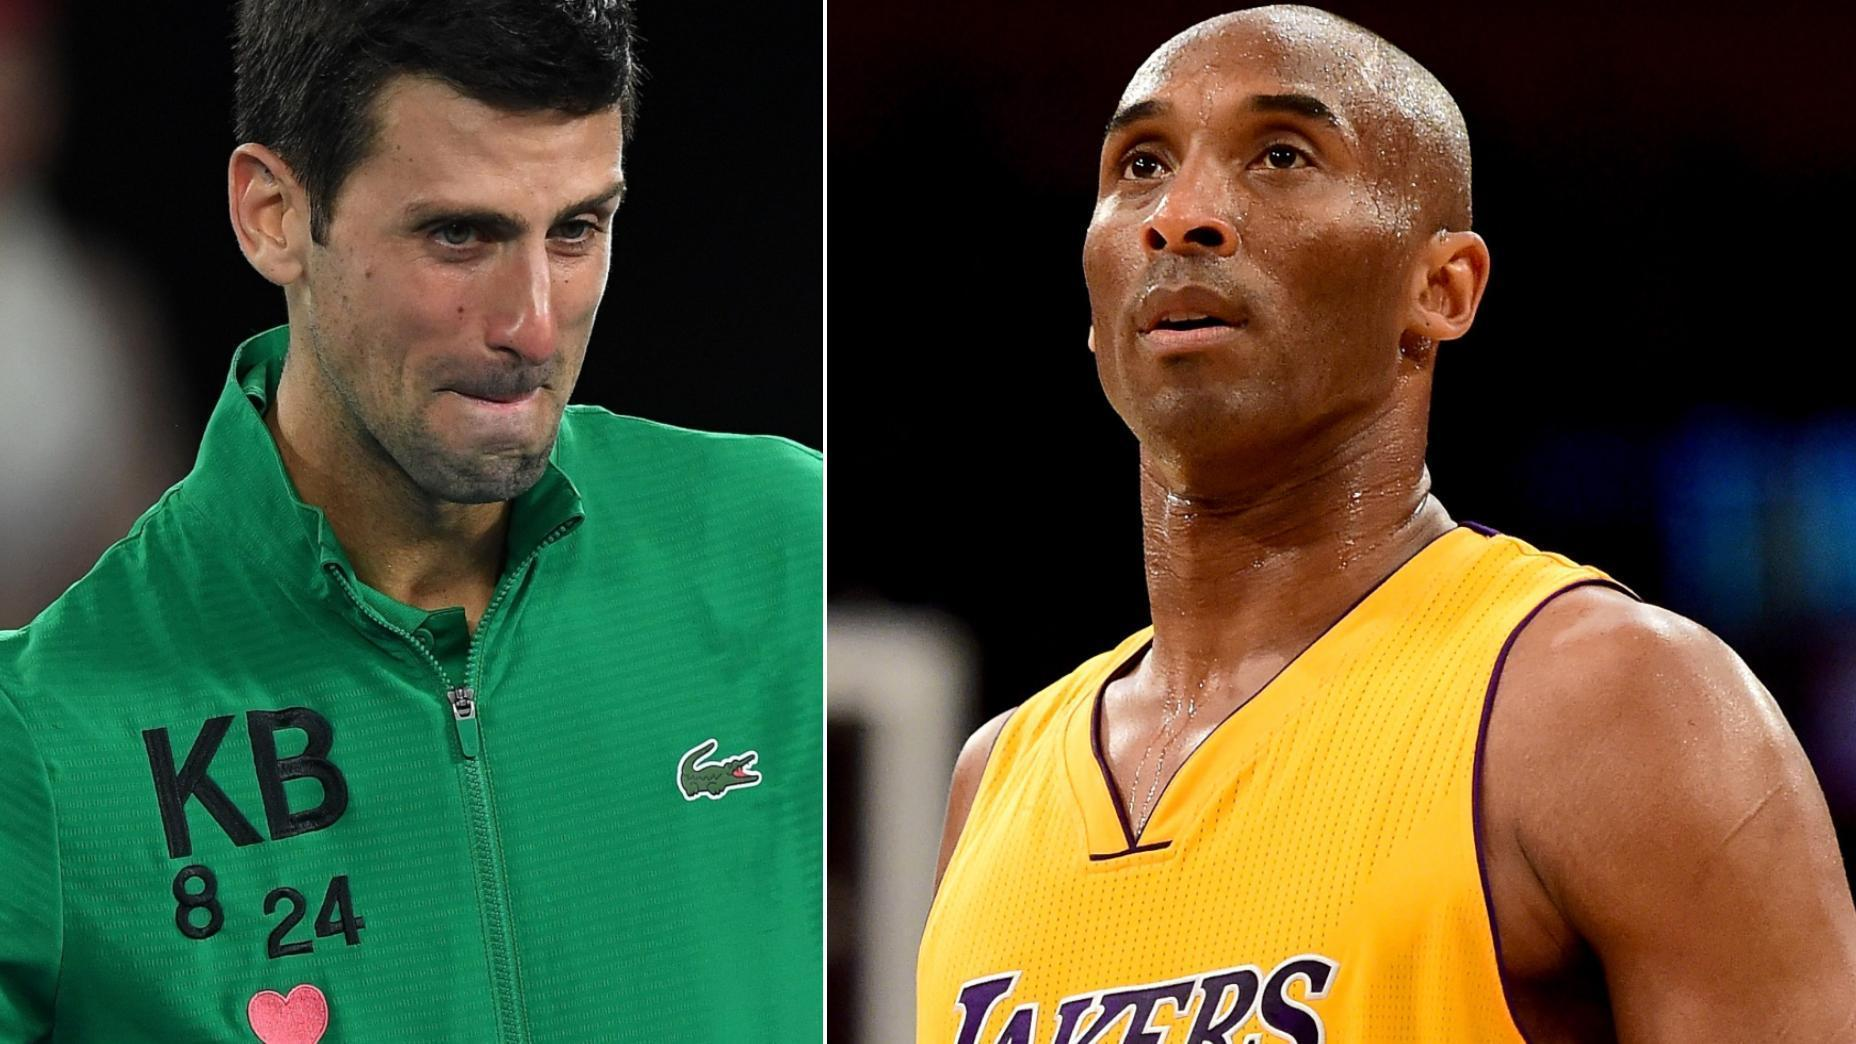 Tearful Djokovic pays tribute to Kobe